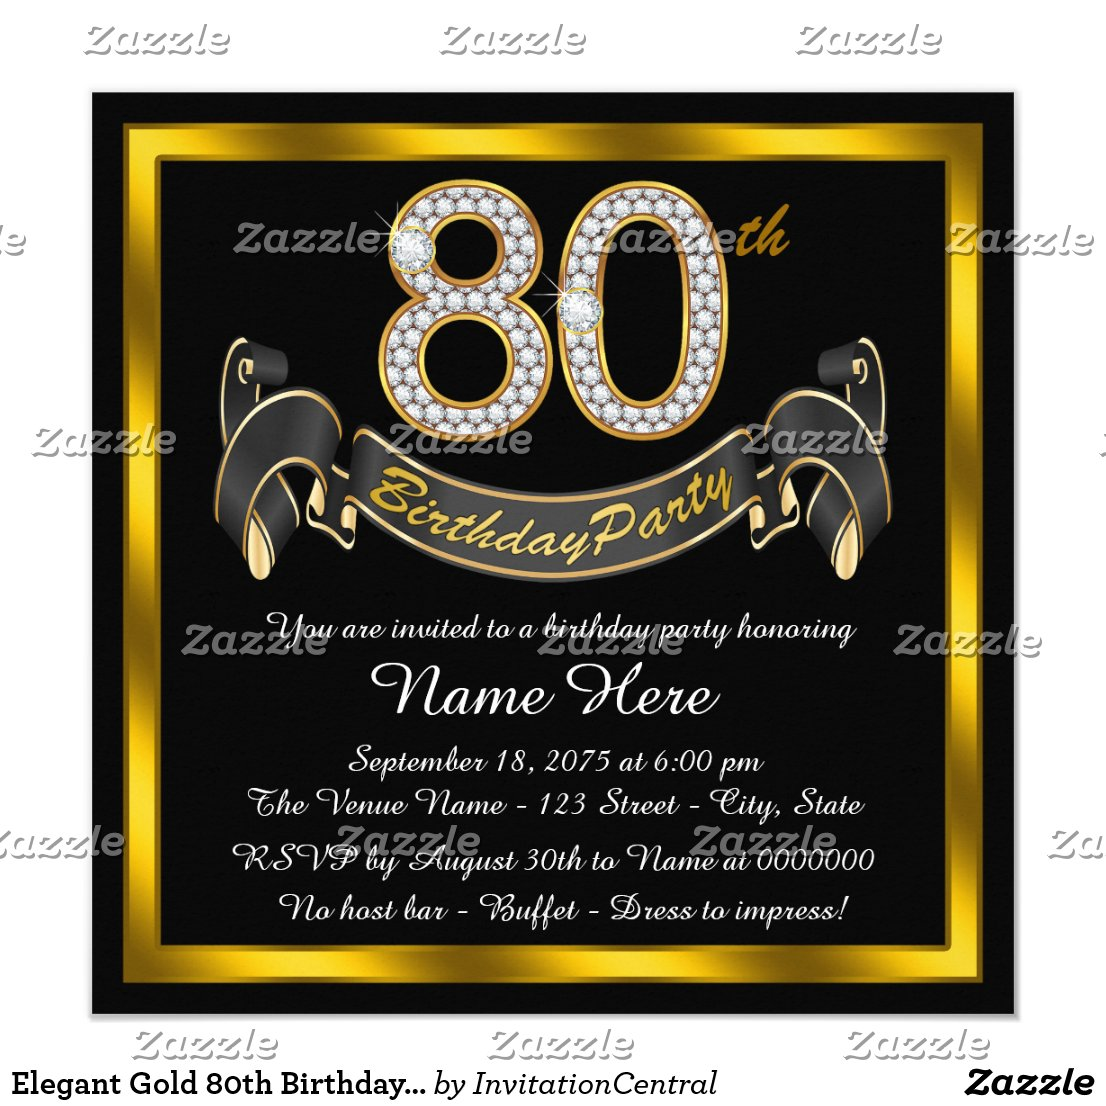 Elegant Gold 80th Birthday Party Card